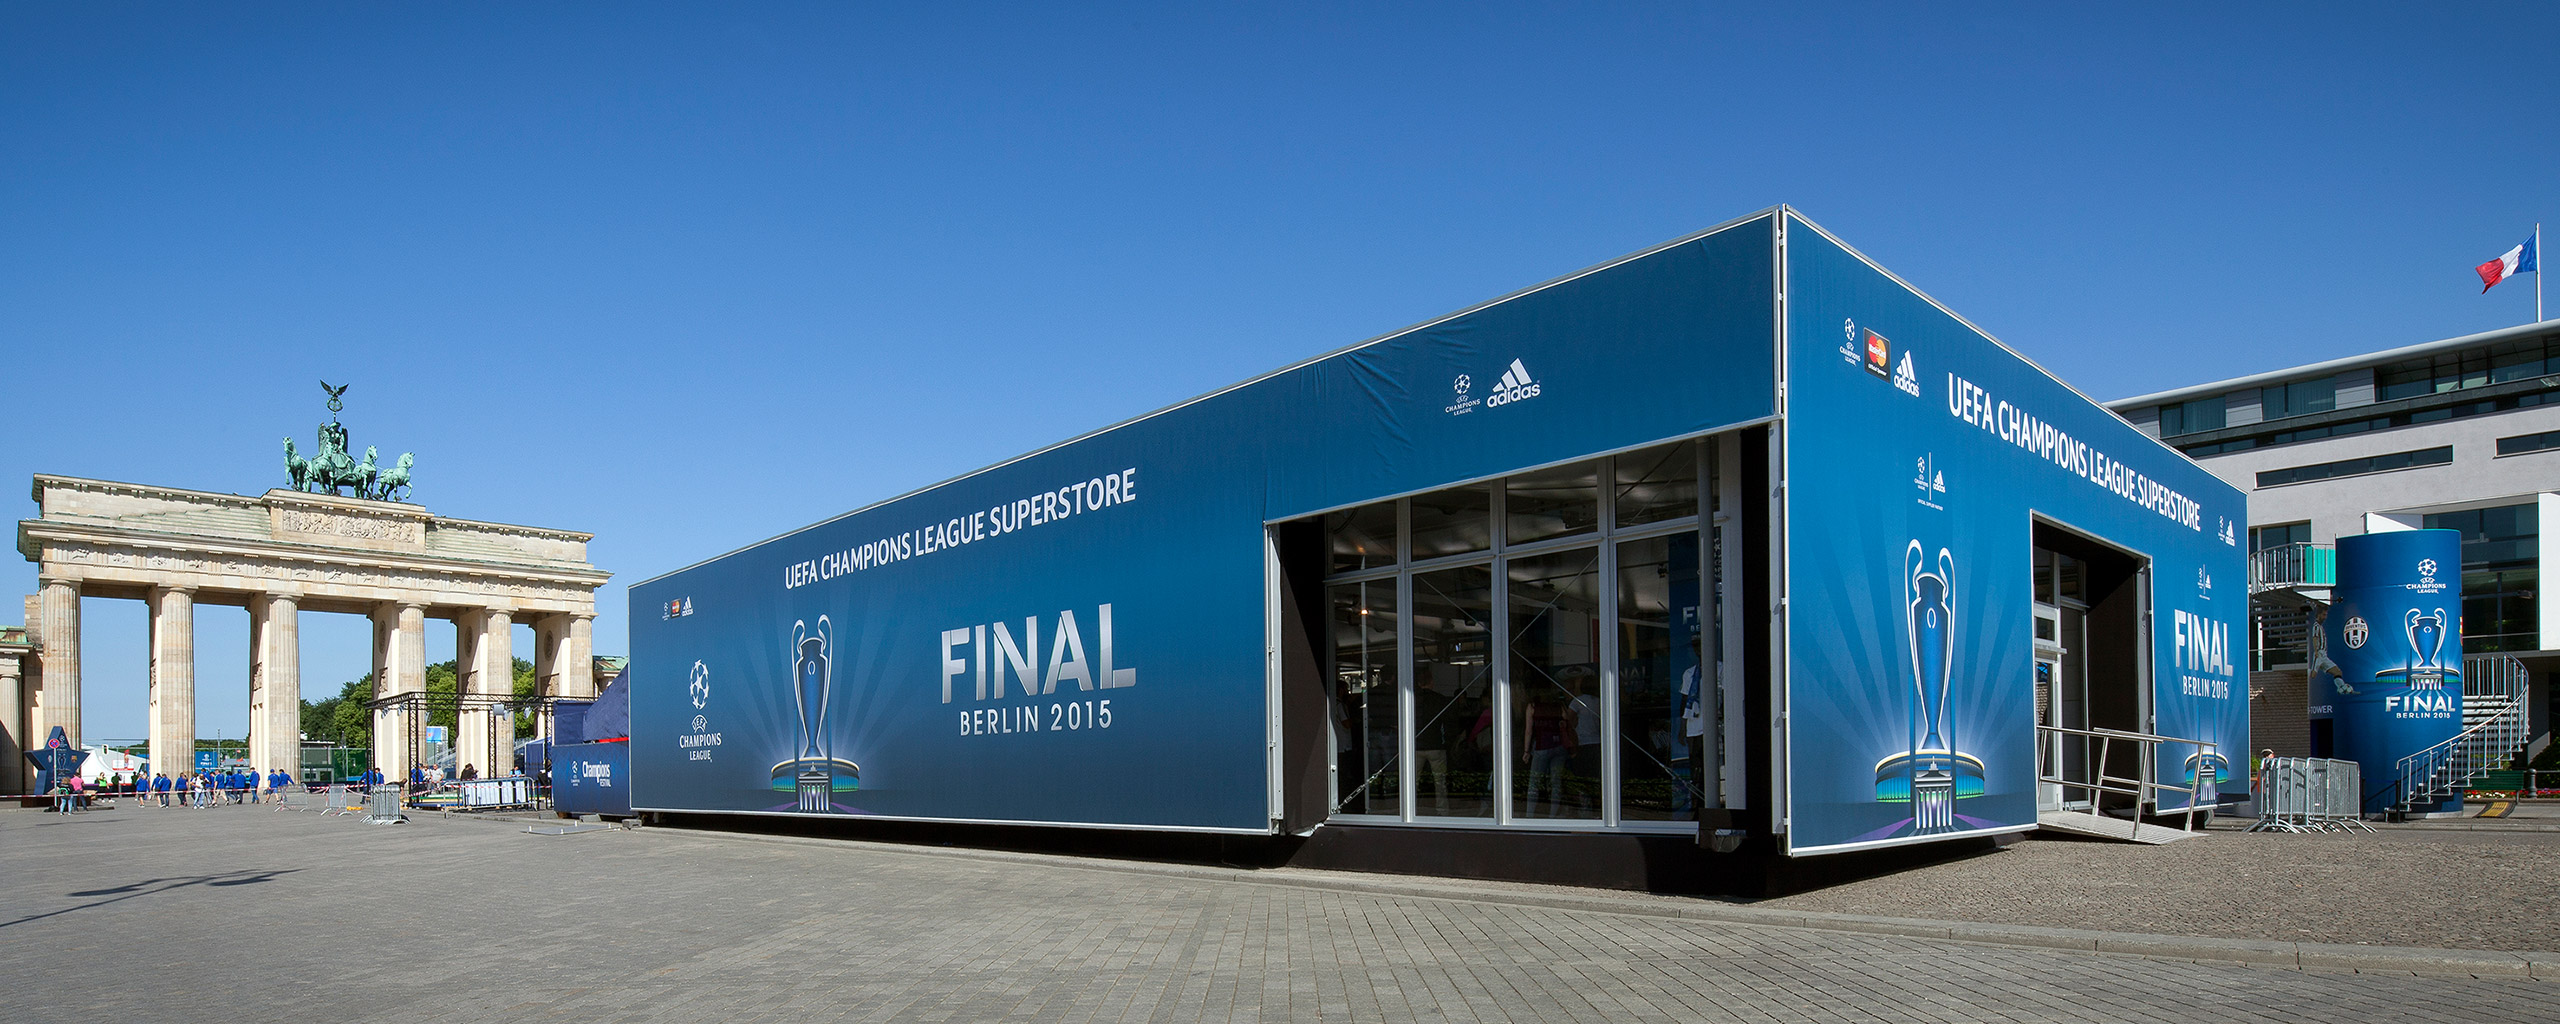 Adidas Merchandising Shop For the UEFA Champions League Final 2015 in Berlin